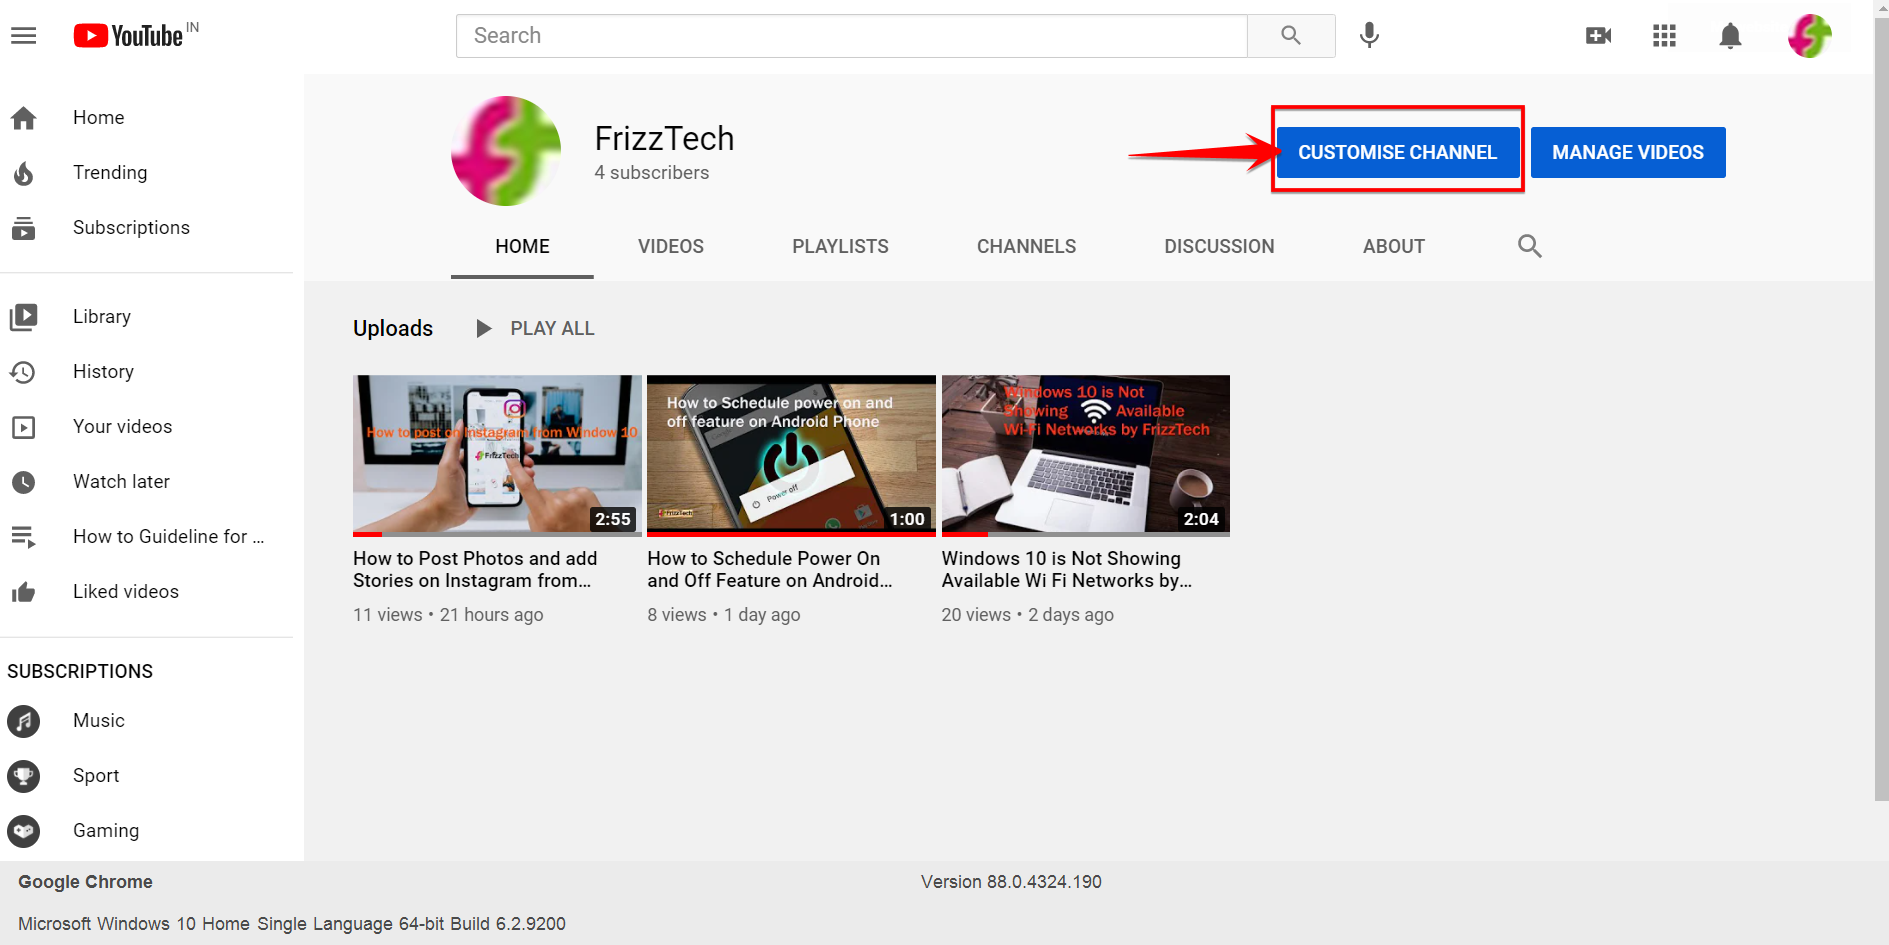 How to create a Youtube channel Step-by-Step Guide - Customize Channel